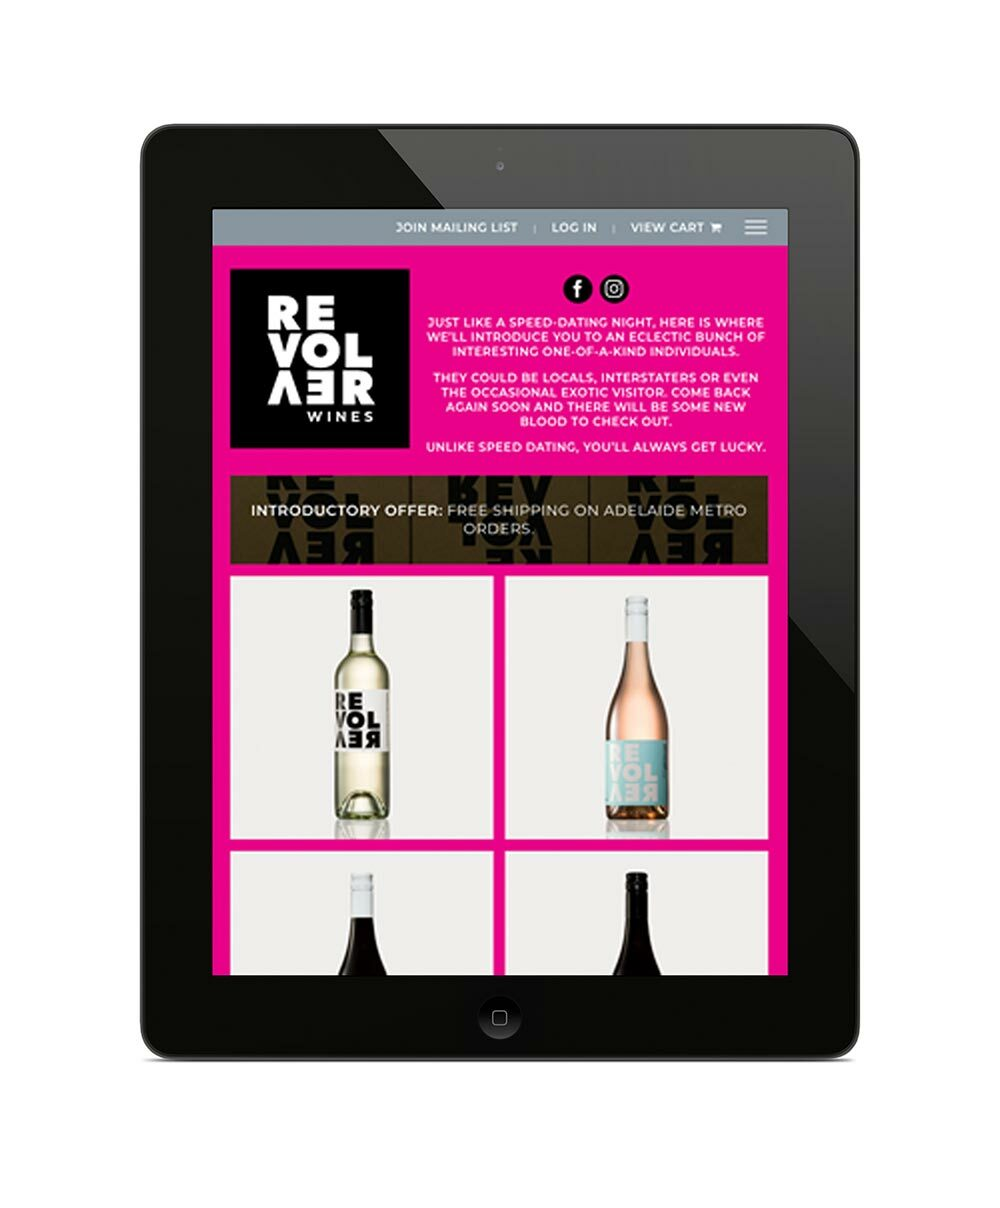 Revolver Wines Website - Shop